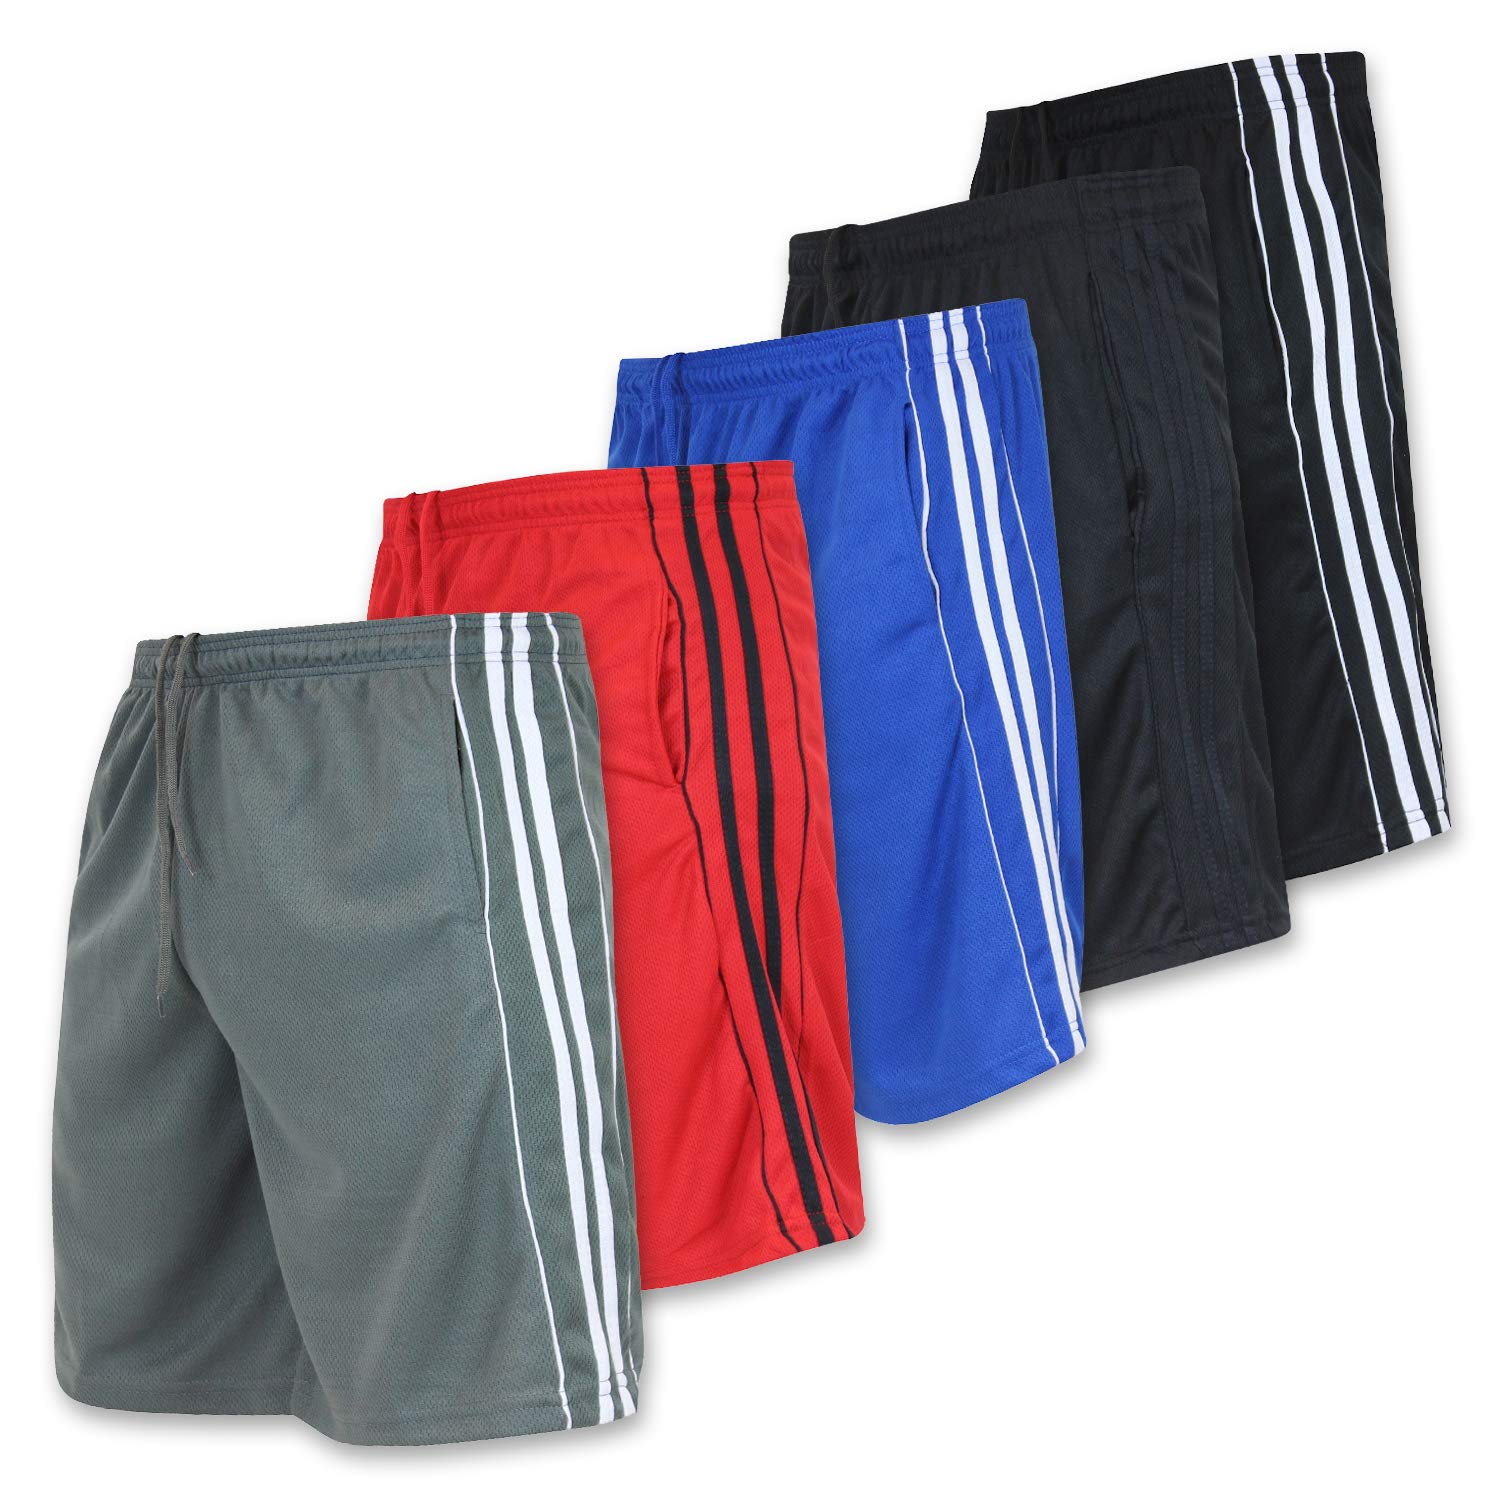 Men's Active Athletic Basketball Essentials Performance Gym Workout Shorts with Pockets - Set 5-5 Pack, S